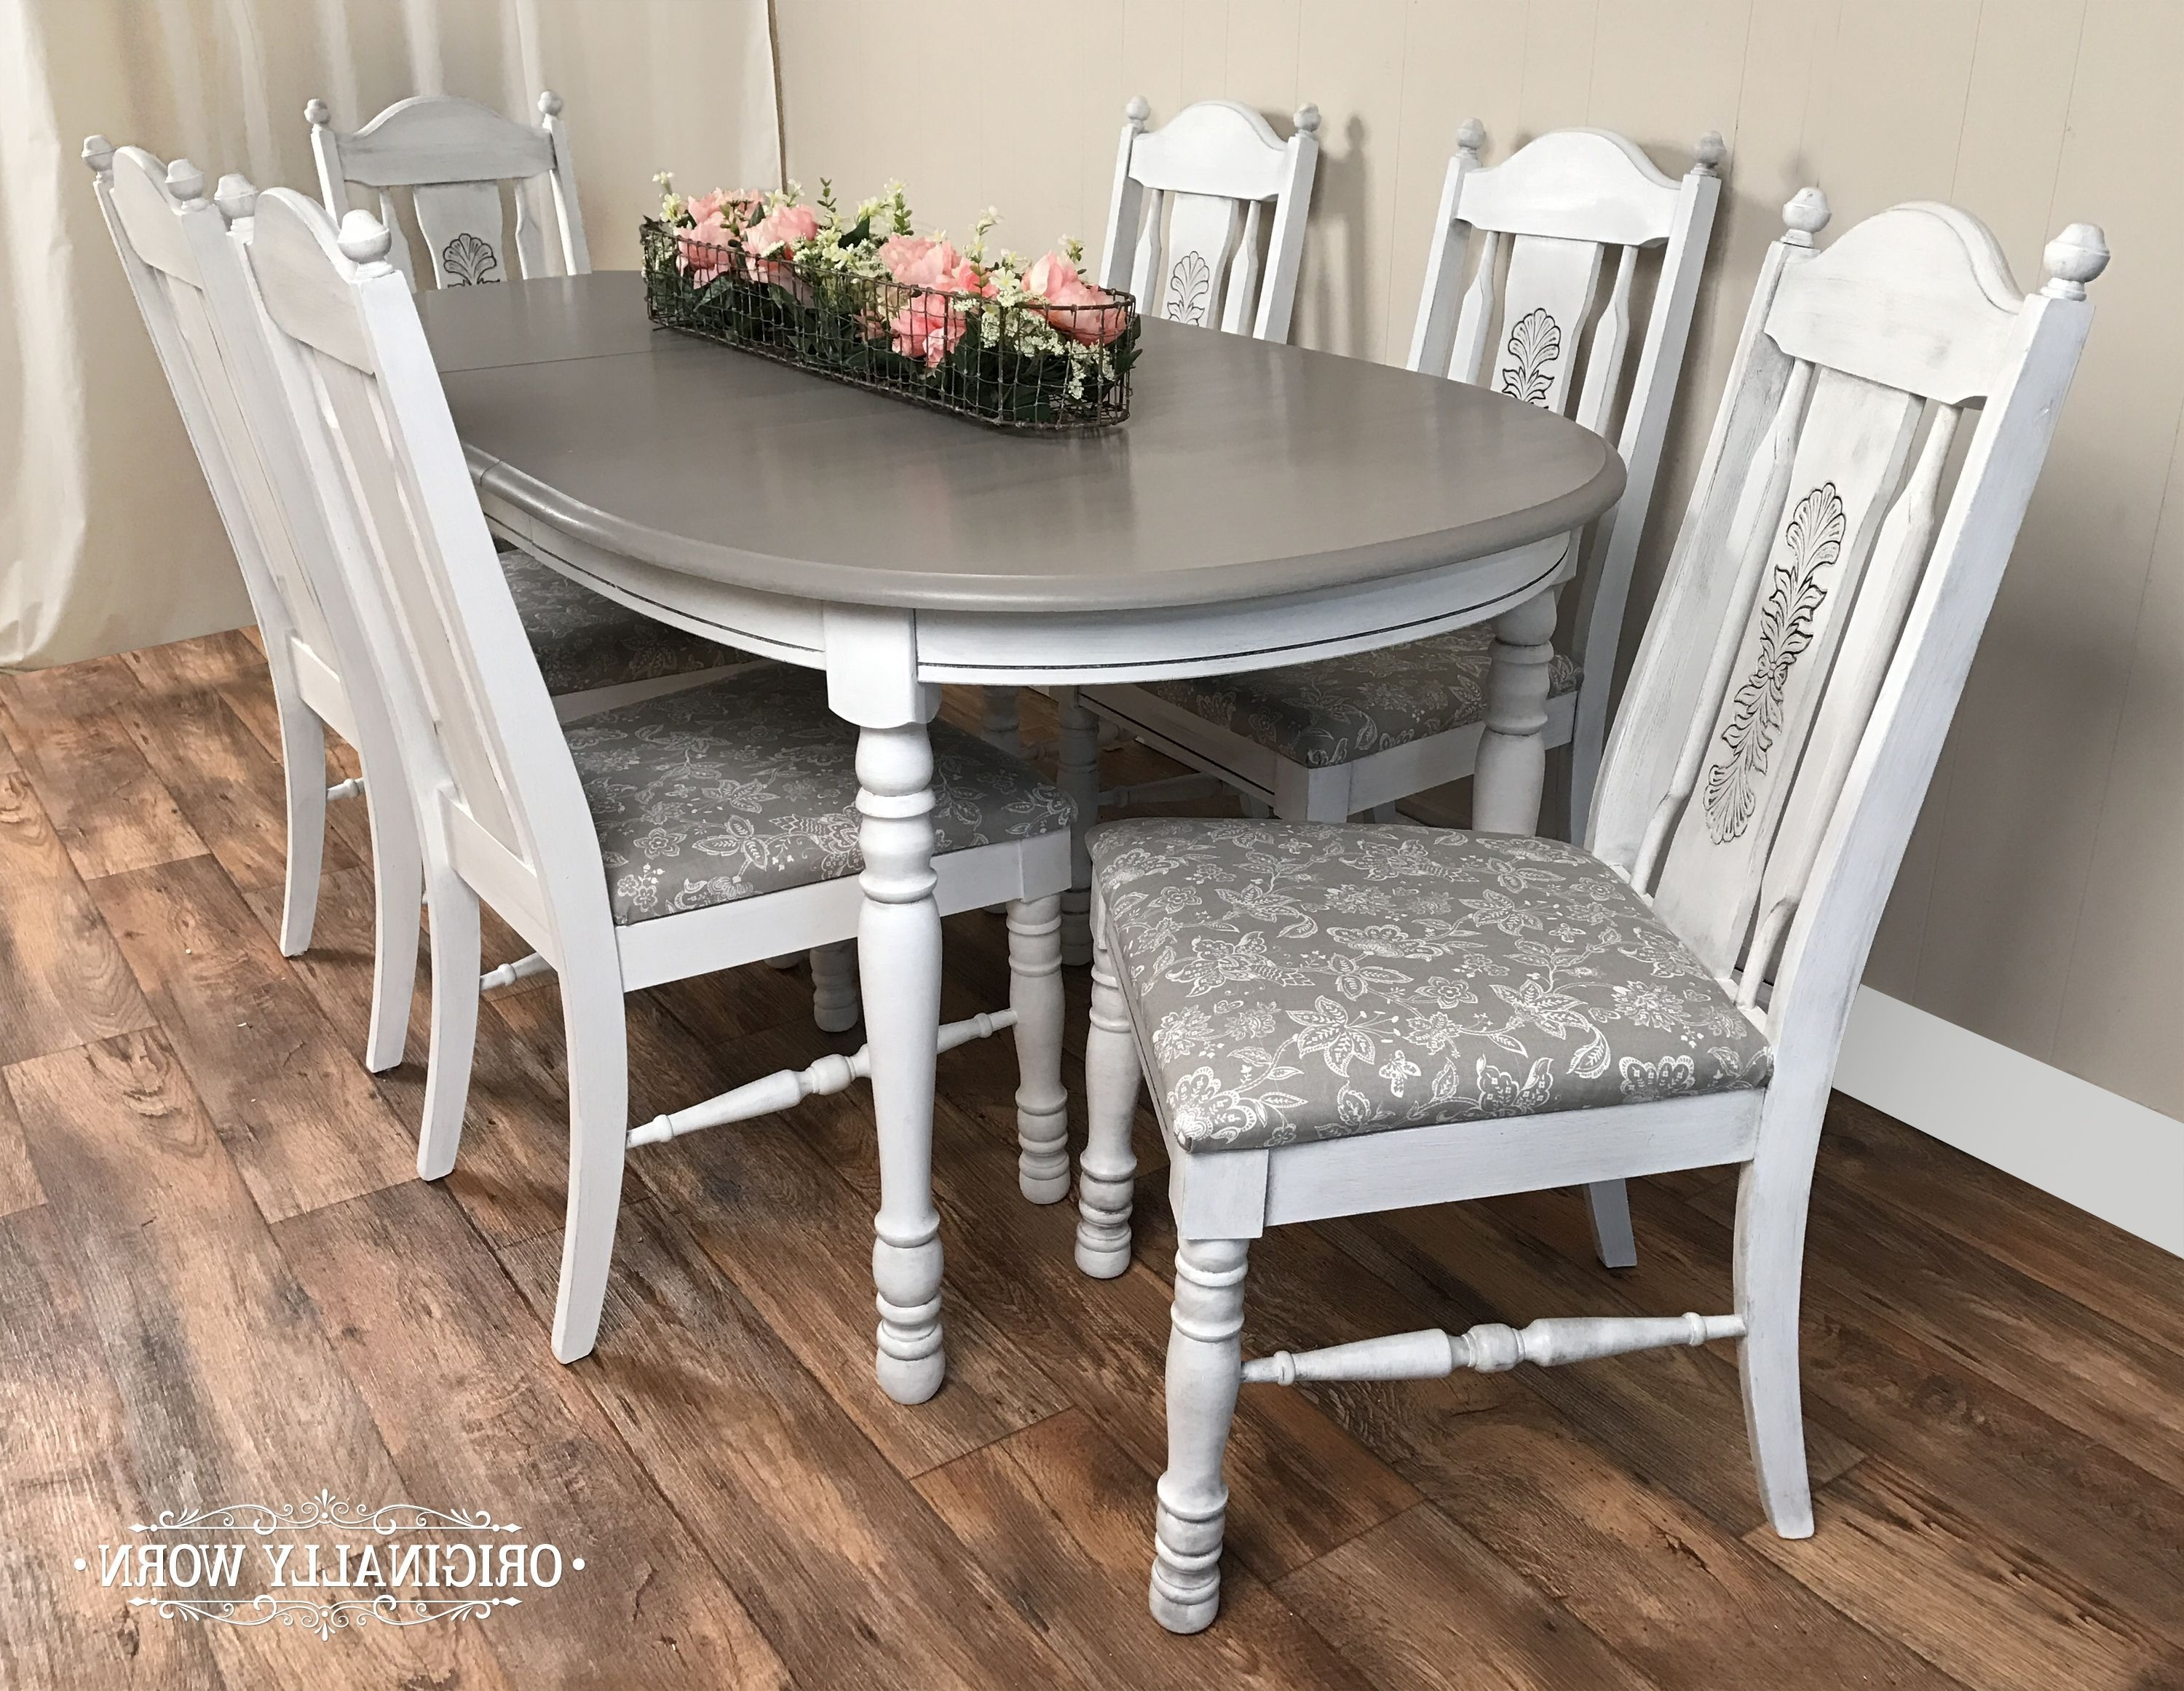 Fashionable Market 7 Piece Dining Sets With Host And Side Chairs Regarding 7 Piece Oval Dining Set In Annie Sloan Chalk Paint In Pure White And (View 12 of 25)